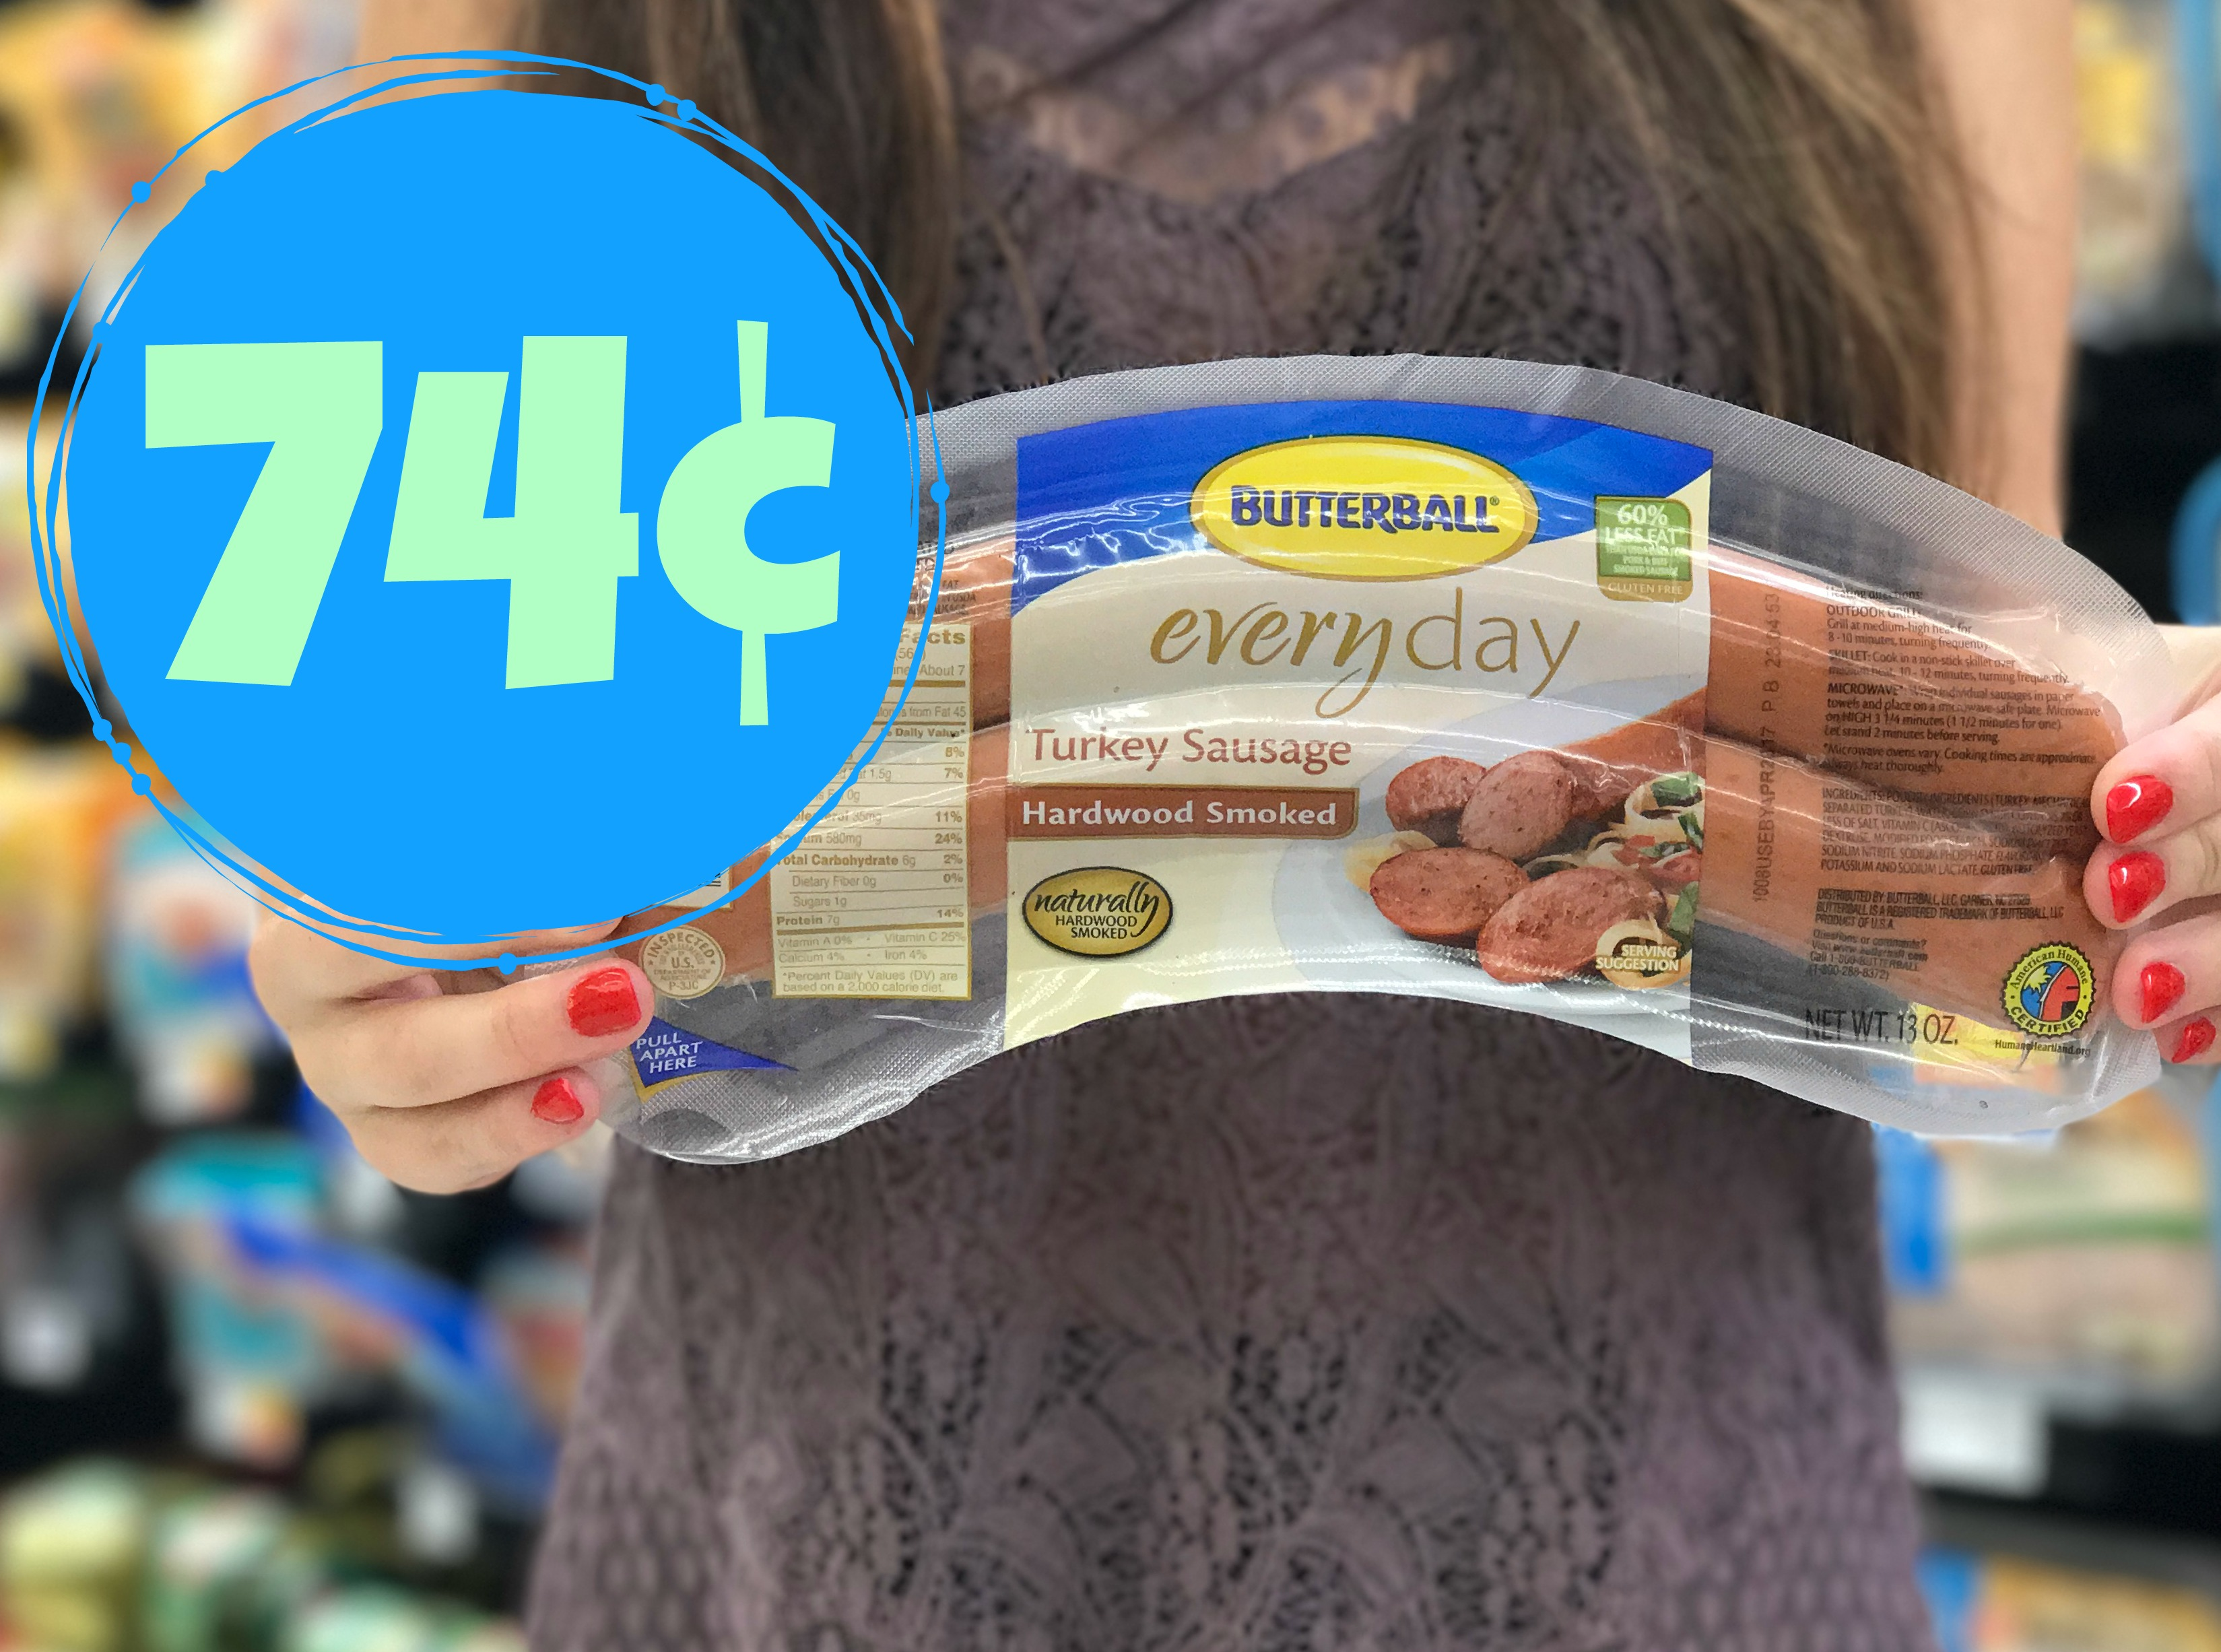 photograph relating to Butterball Coupons Turkey Printable identify Butterball Turkey Sausage as small as $0.74 at Kroger (Reg